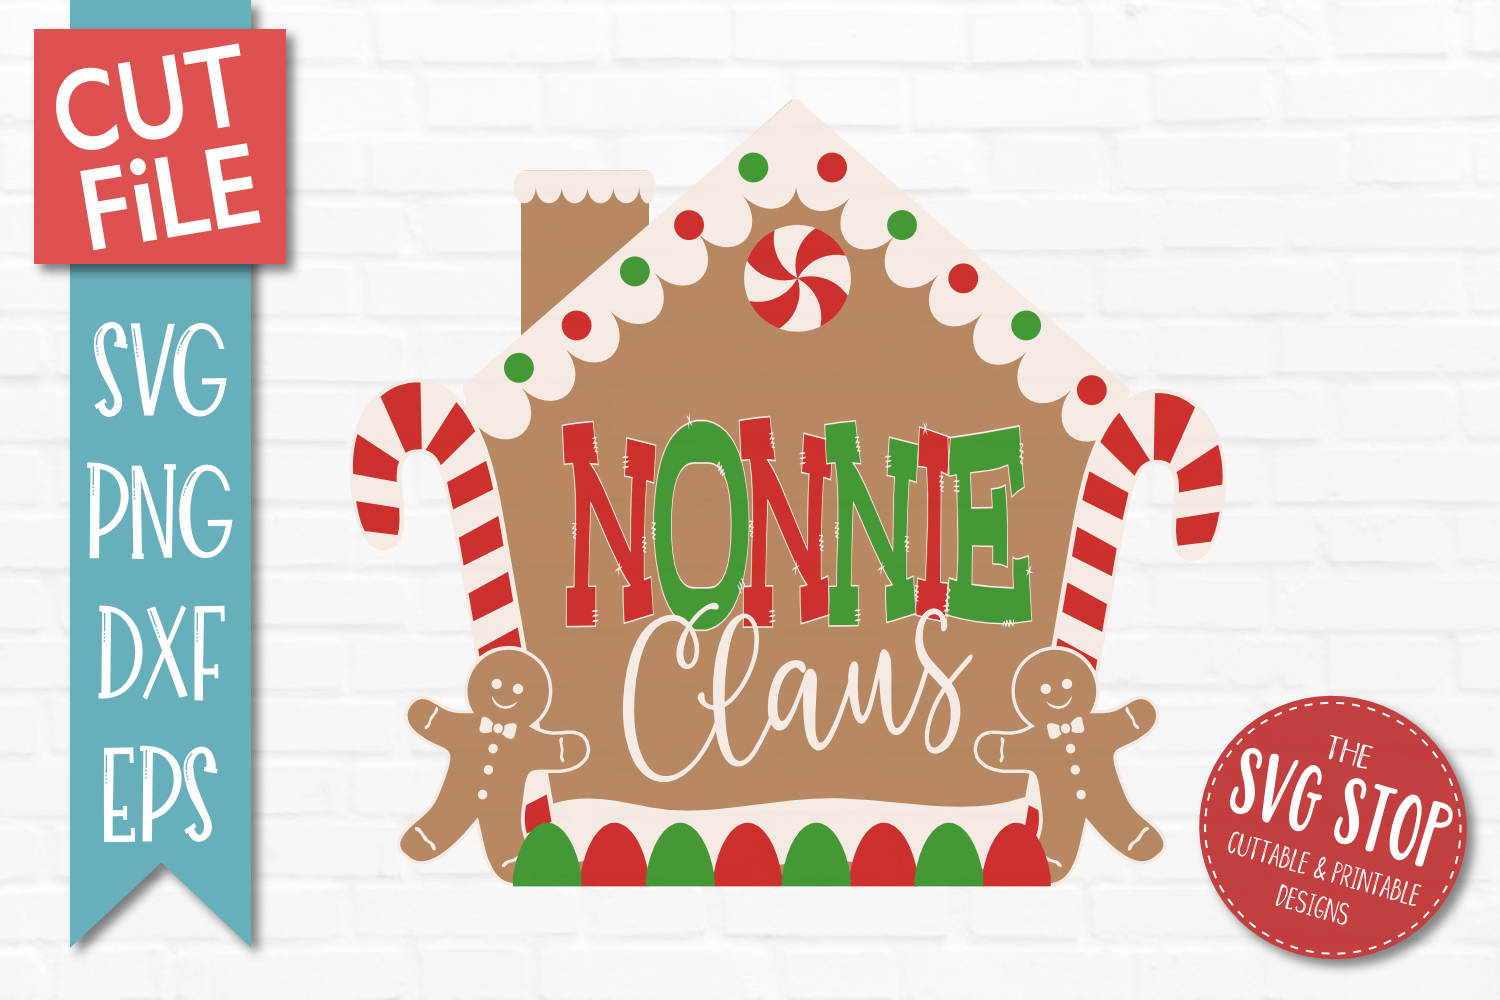 Nonnie Claus Gingerbread Christmas SVG, PNG, DXF, EPS example image 1